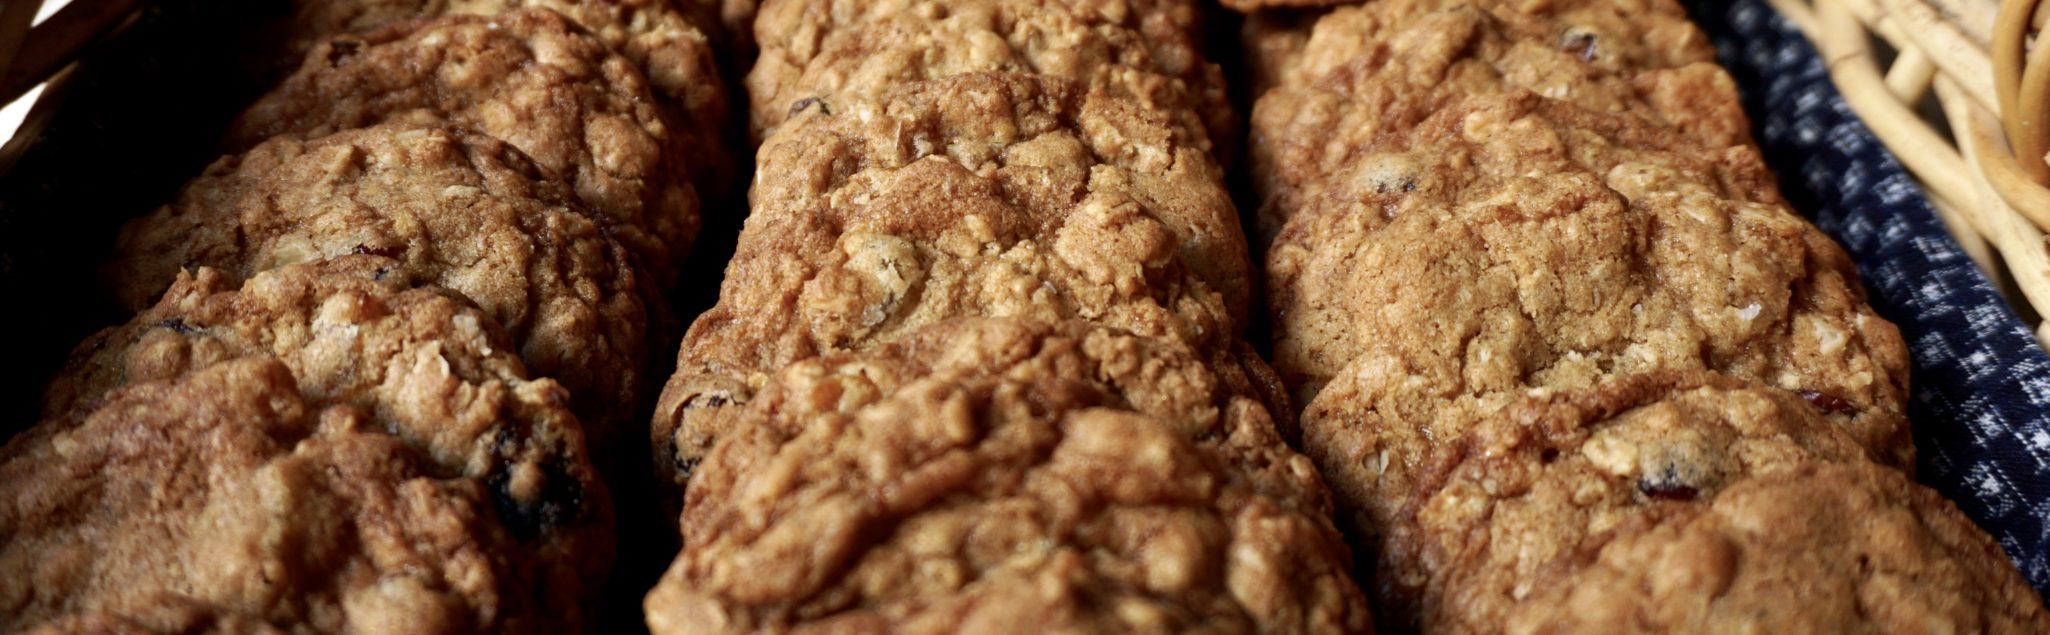 Let's Get Ready to Crumble! (Cranberry Apricot Oatmeal Cookies)